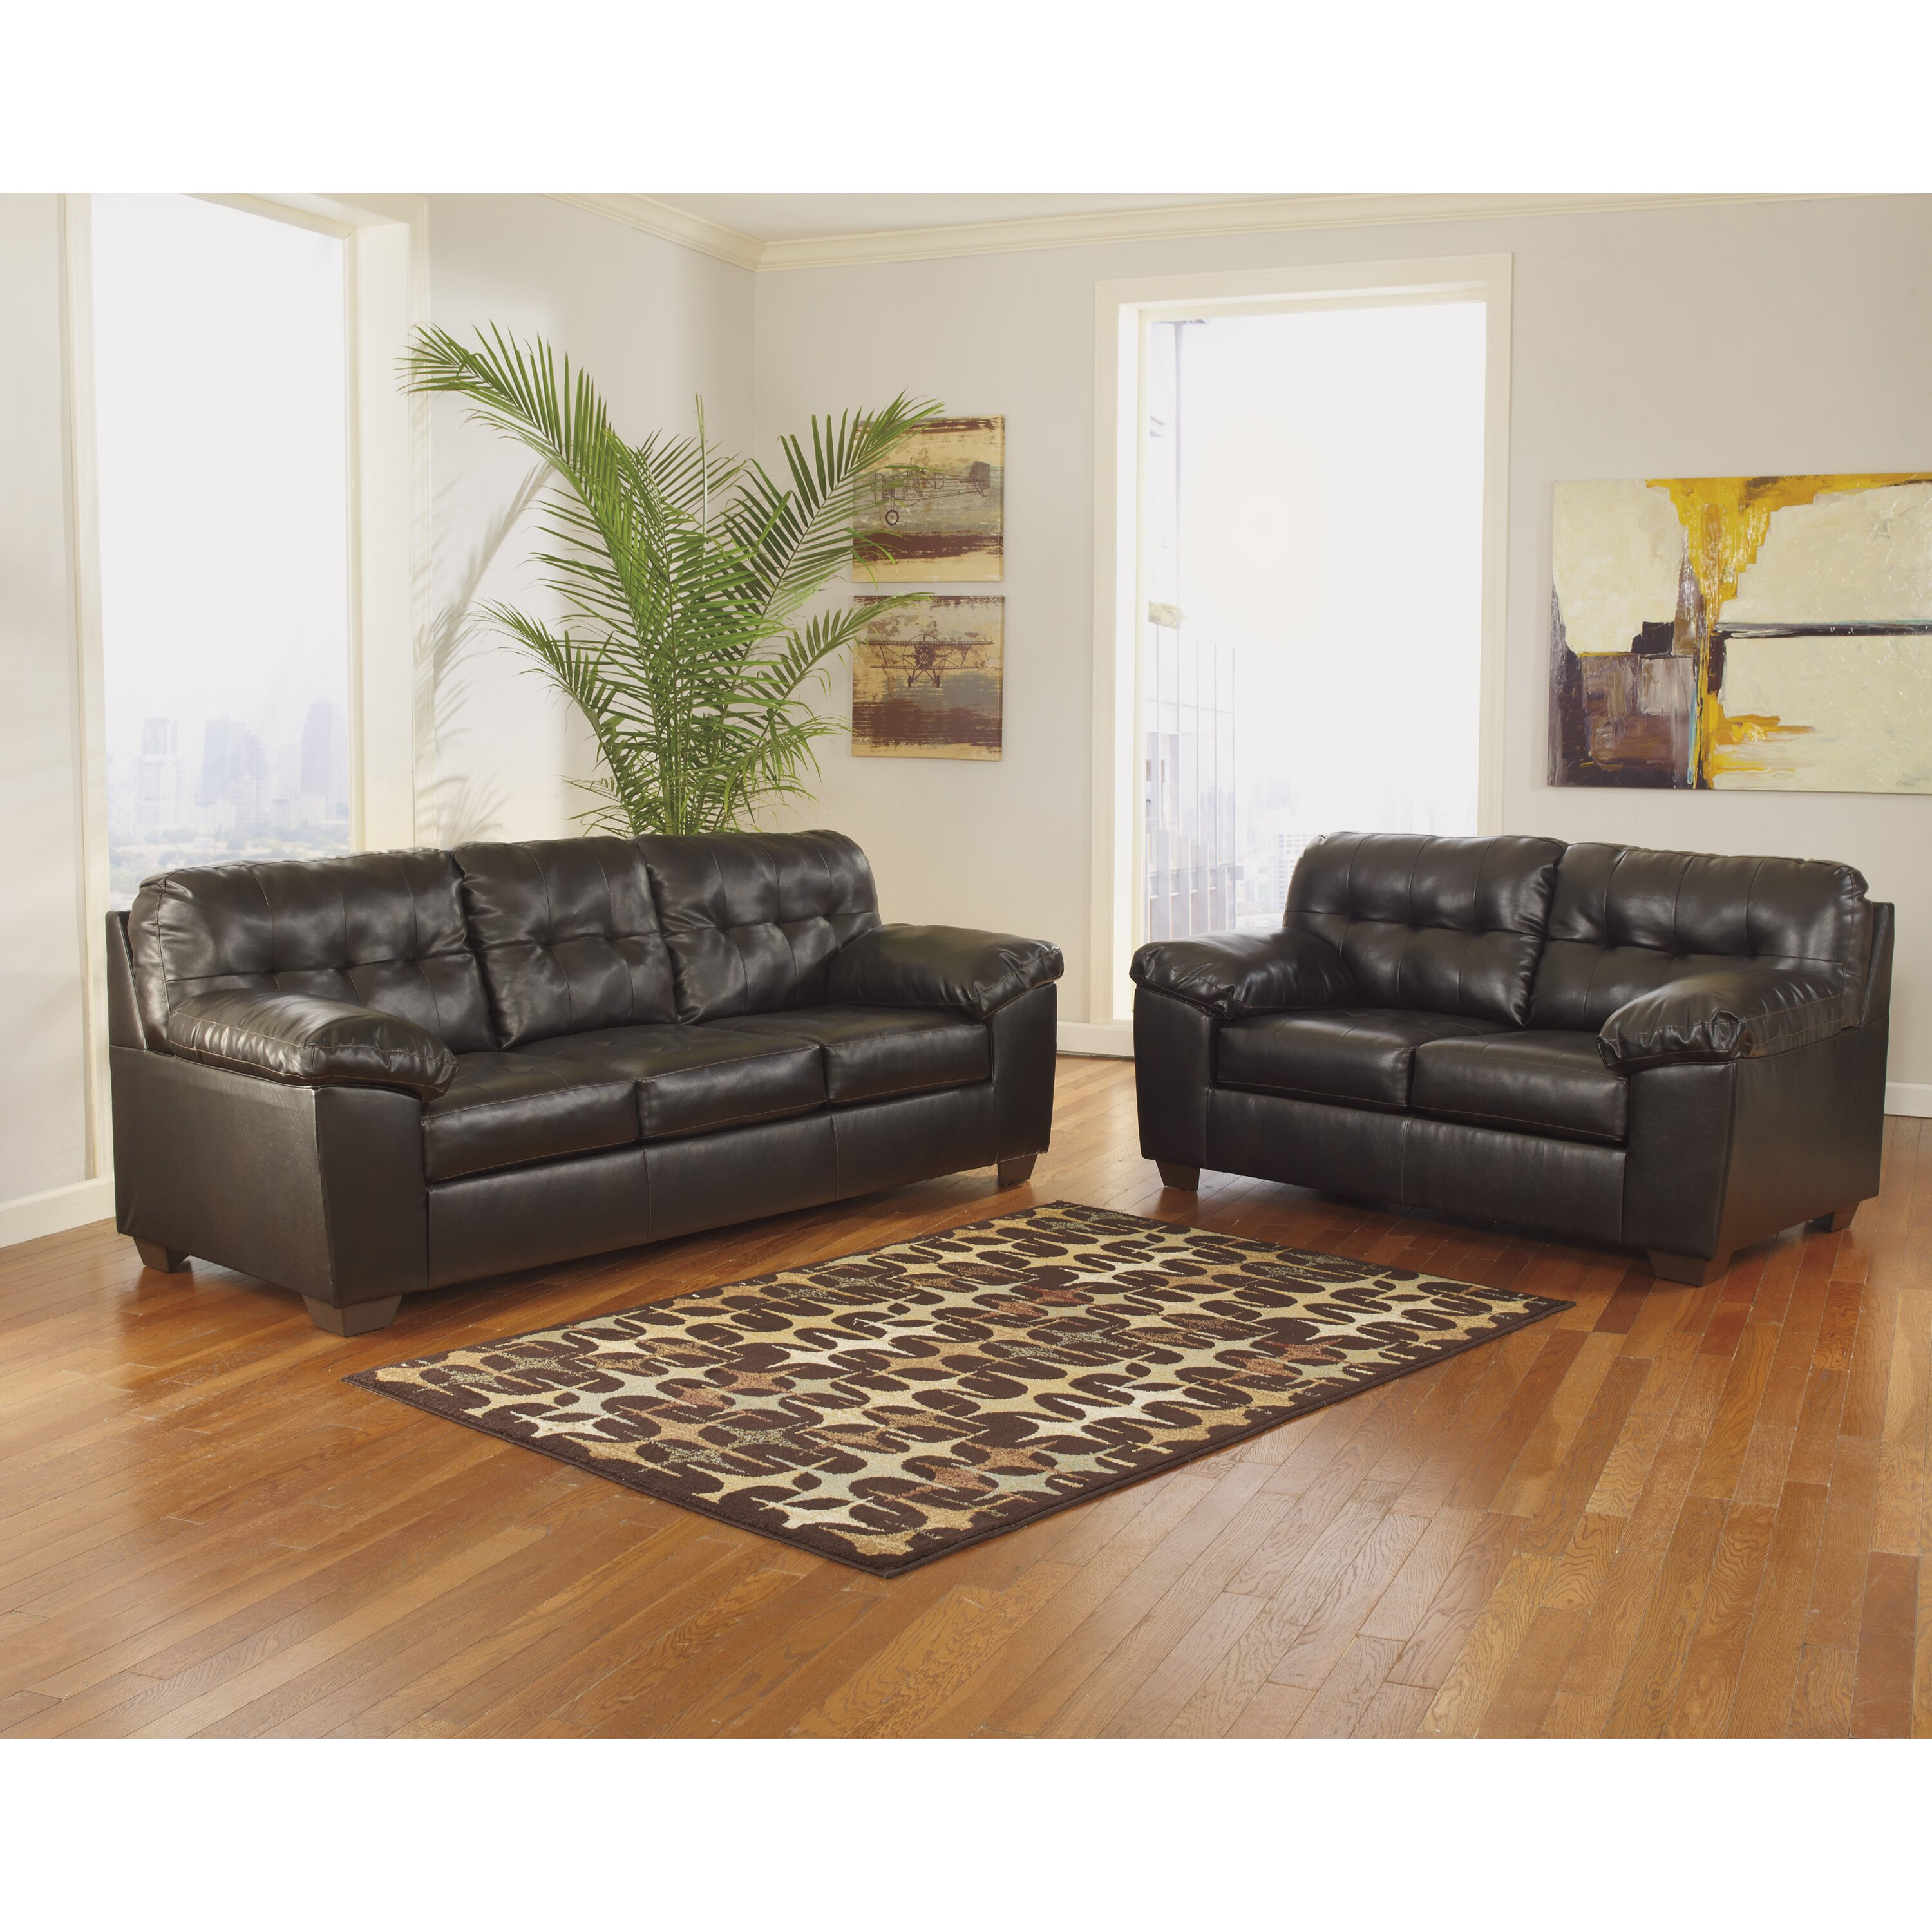 Flash furniture alliston 2 piece signature design by for Living room ideas ashley furniture